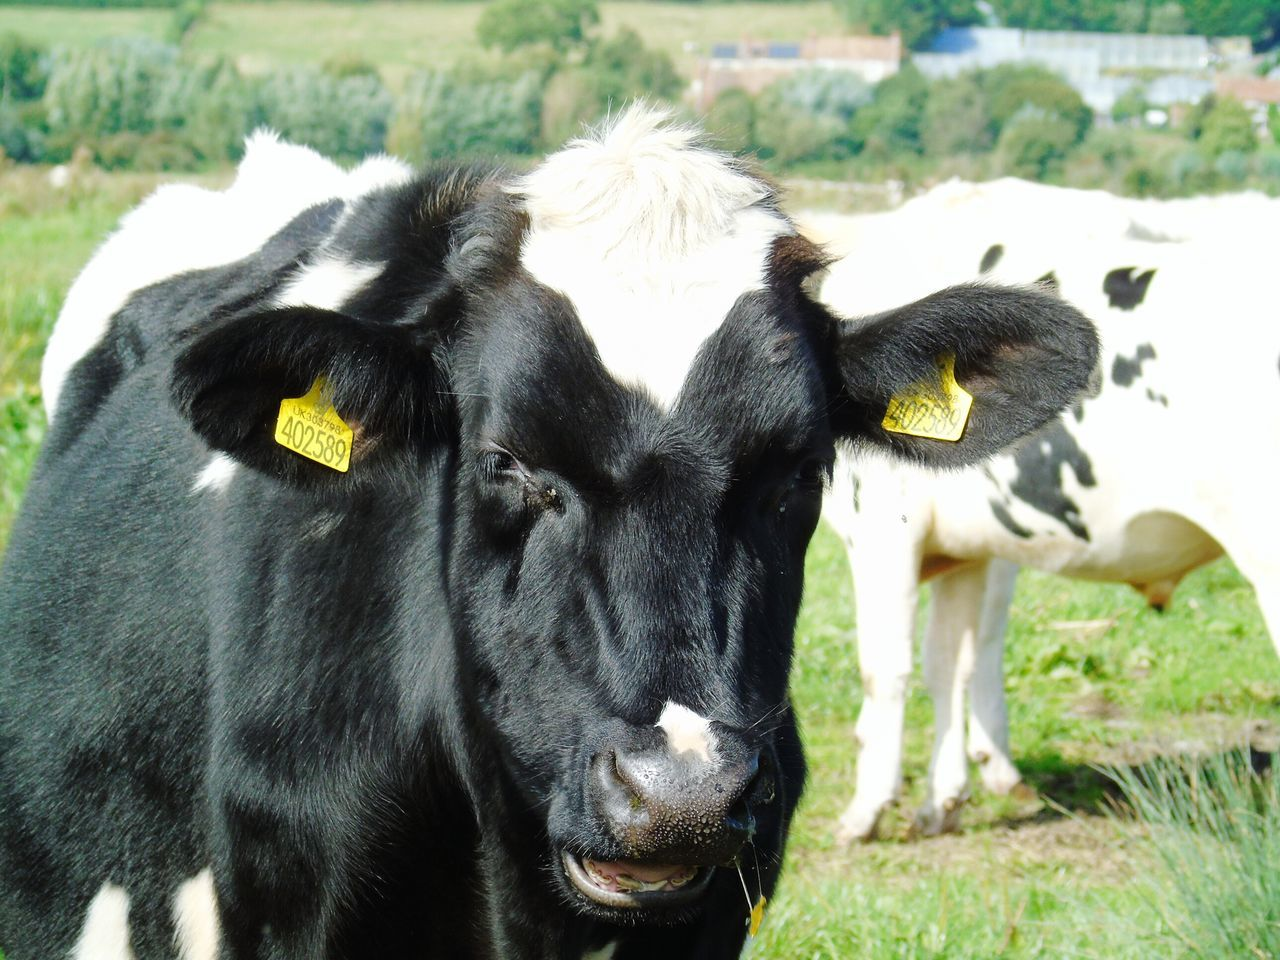 Animal Themes Animal Head  Domestic Cattle Livestock Field Front View Animal Nose Nature Nature On Your Doorstep Somerset Levels Uk In All Its Glory Green Color Looking At Camera Herbivorous Snout